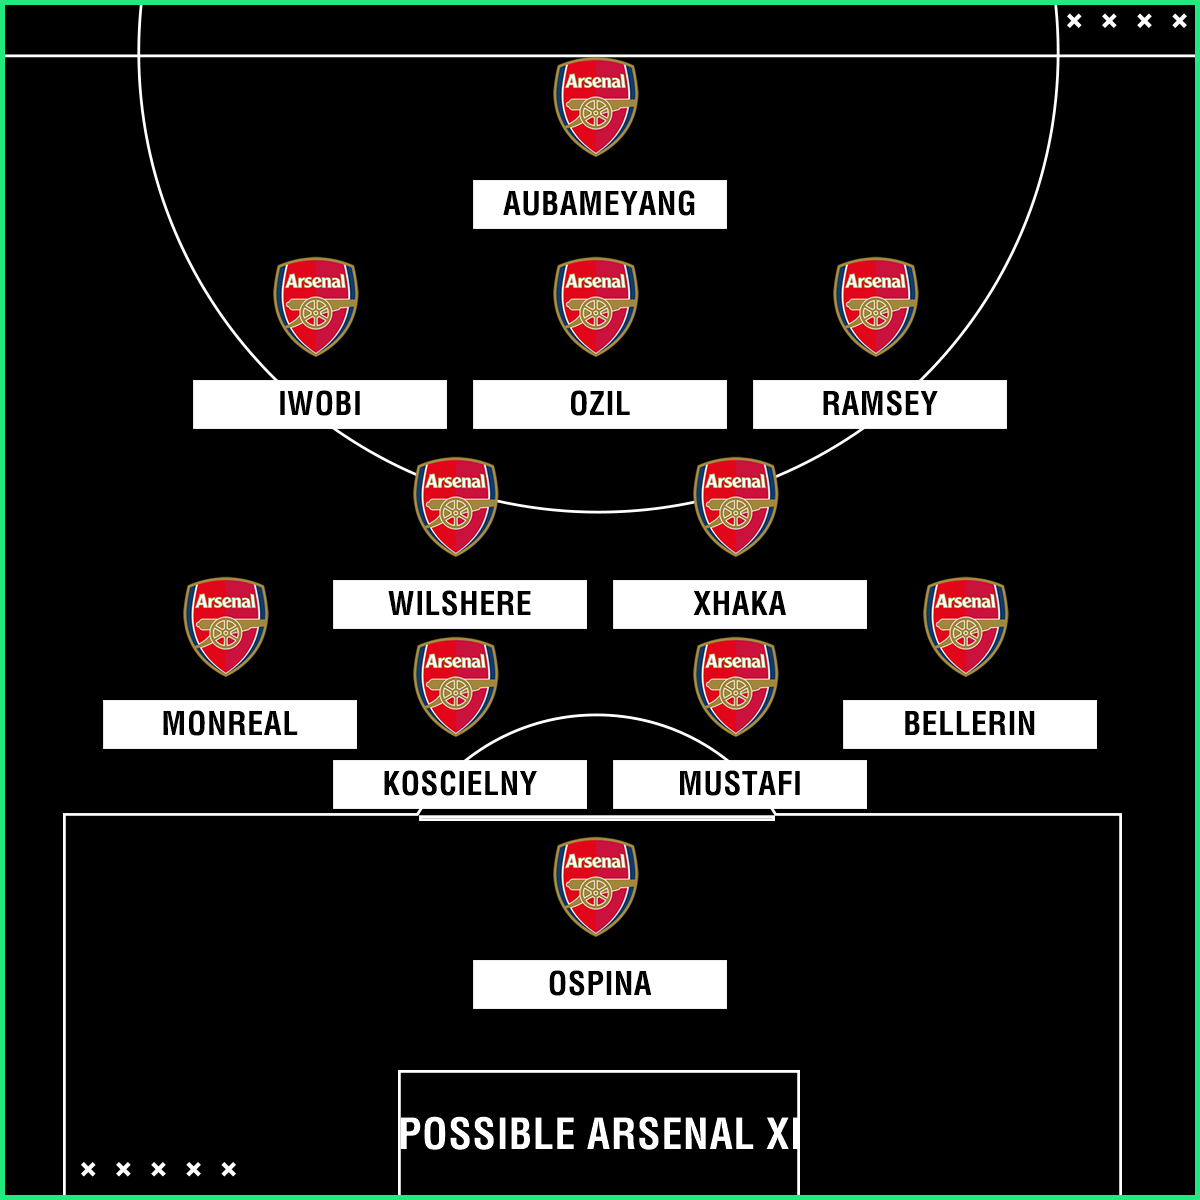 Tottenham Team News Injuries Suspensions And Line Up Vs: Arsenal Team News: Injuries, Suspensions And Line-up Vs